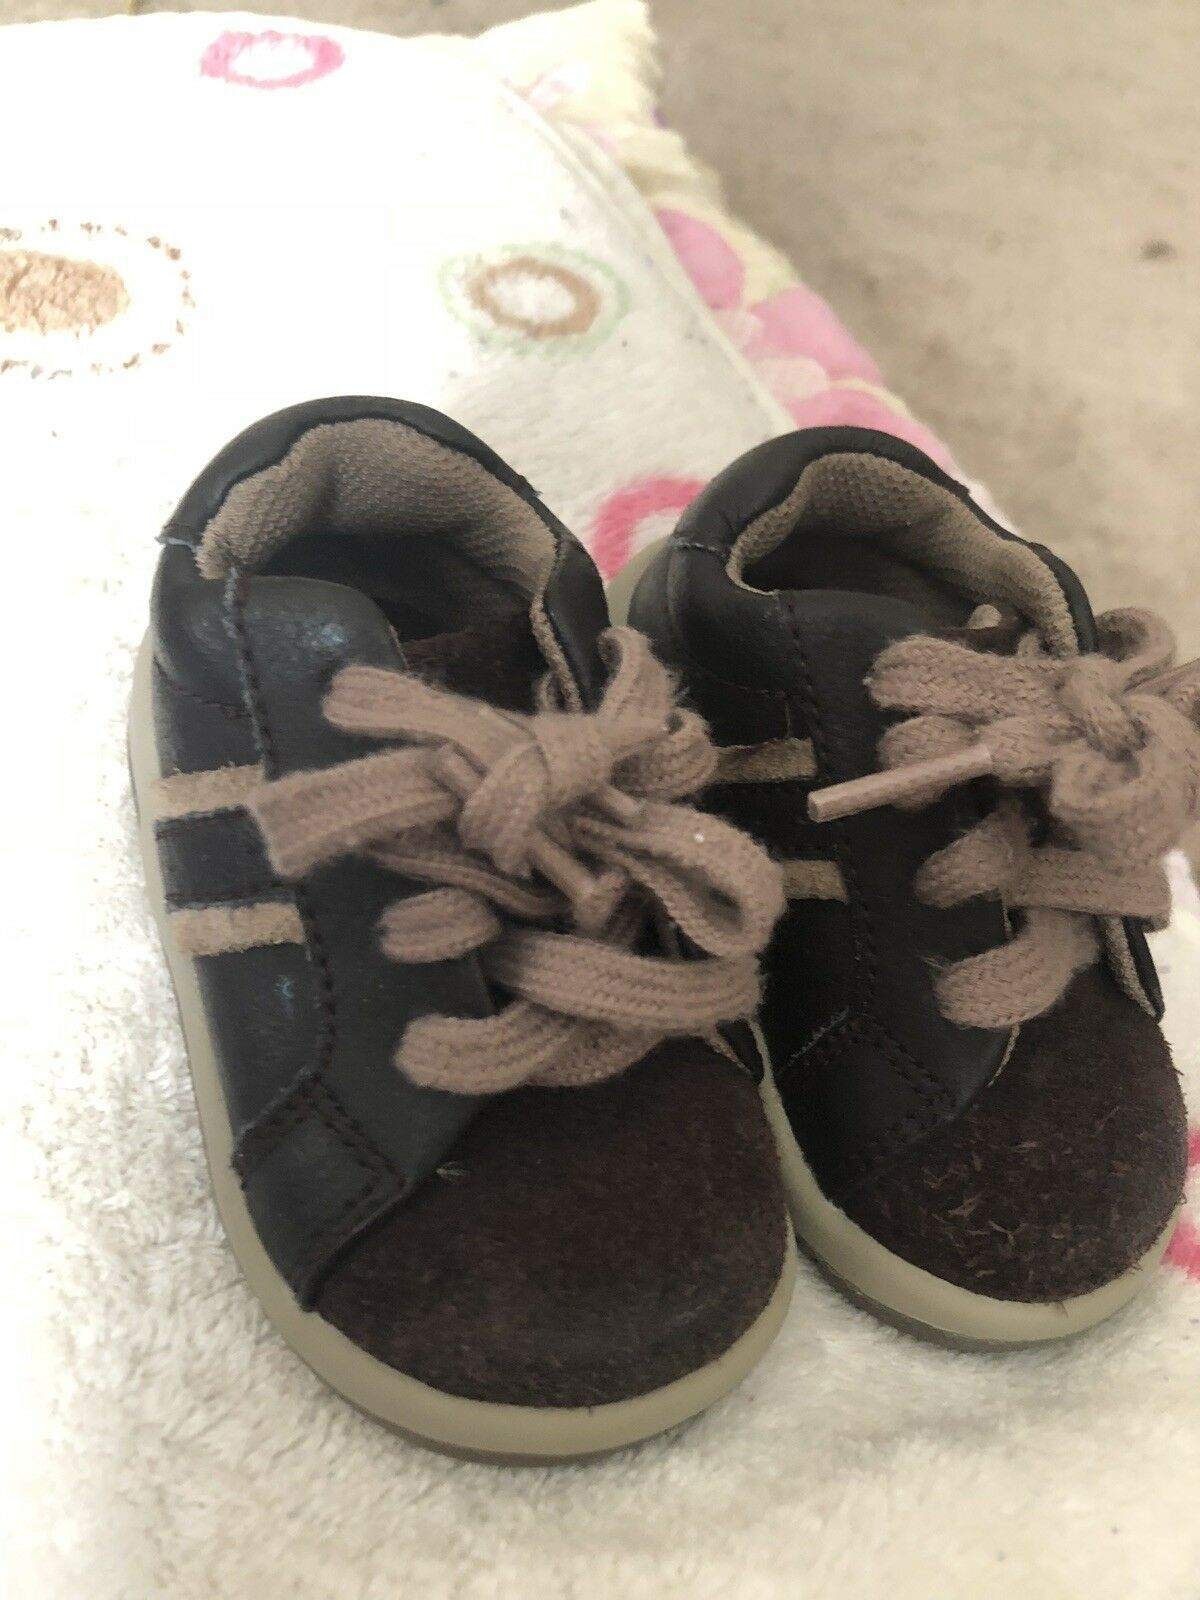 Baby Infant Boy Shoes Size 3 - Baby Boy